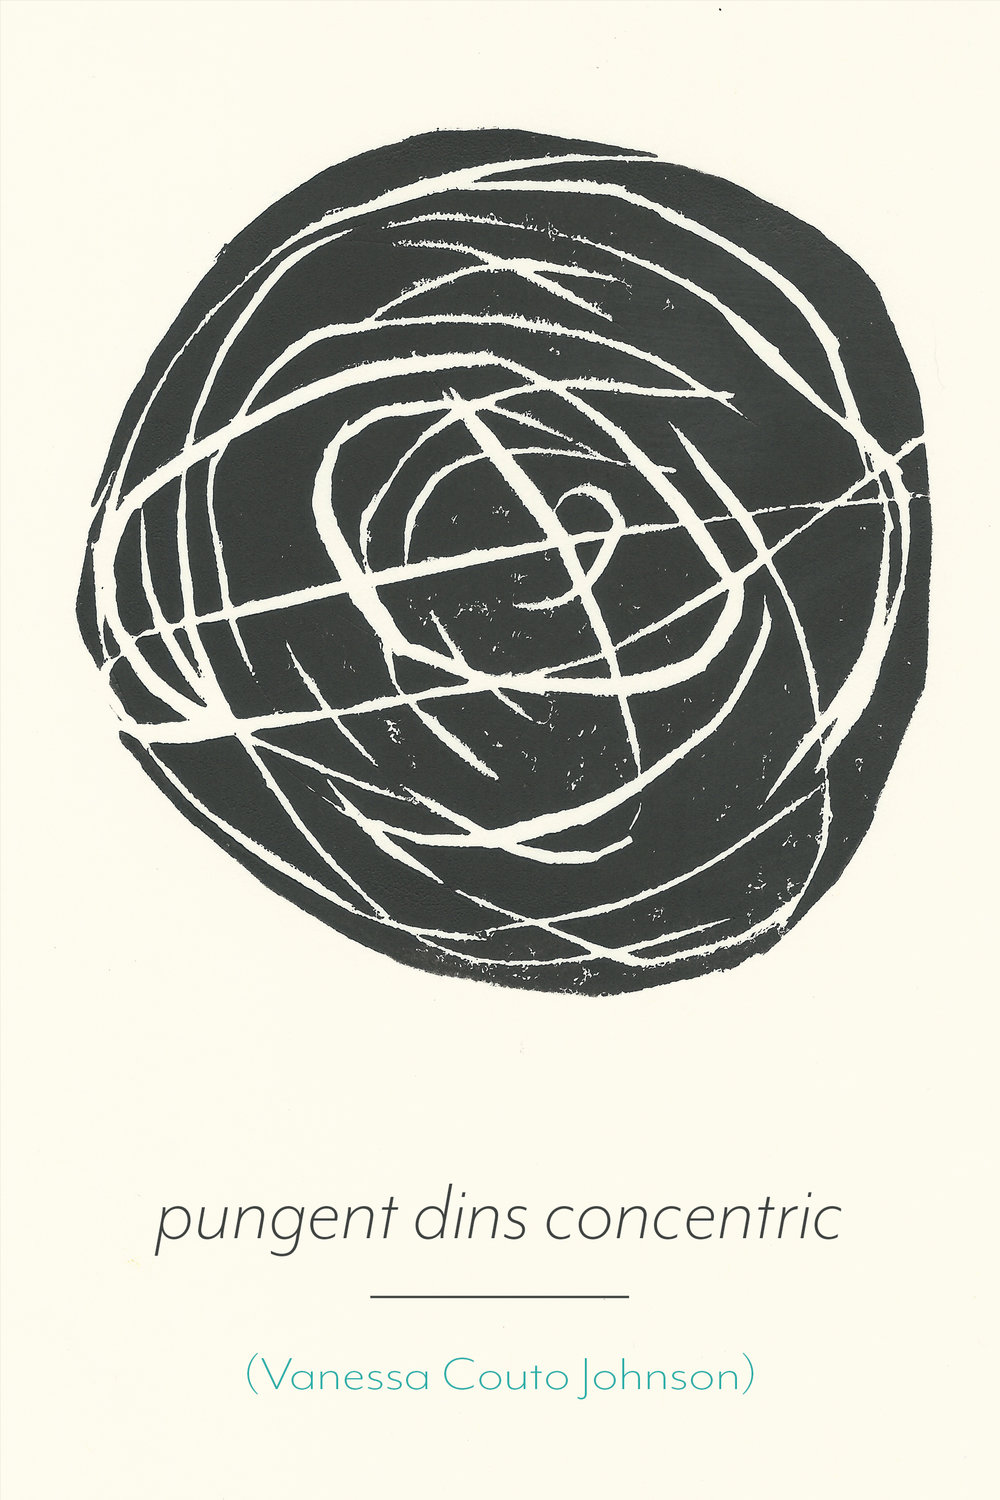 pungent dins concentric by Vanessa Couto Johnson - Release Date December 4th